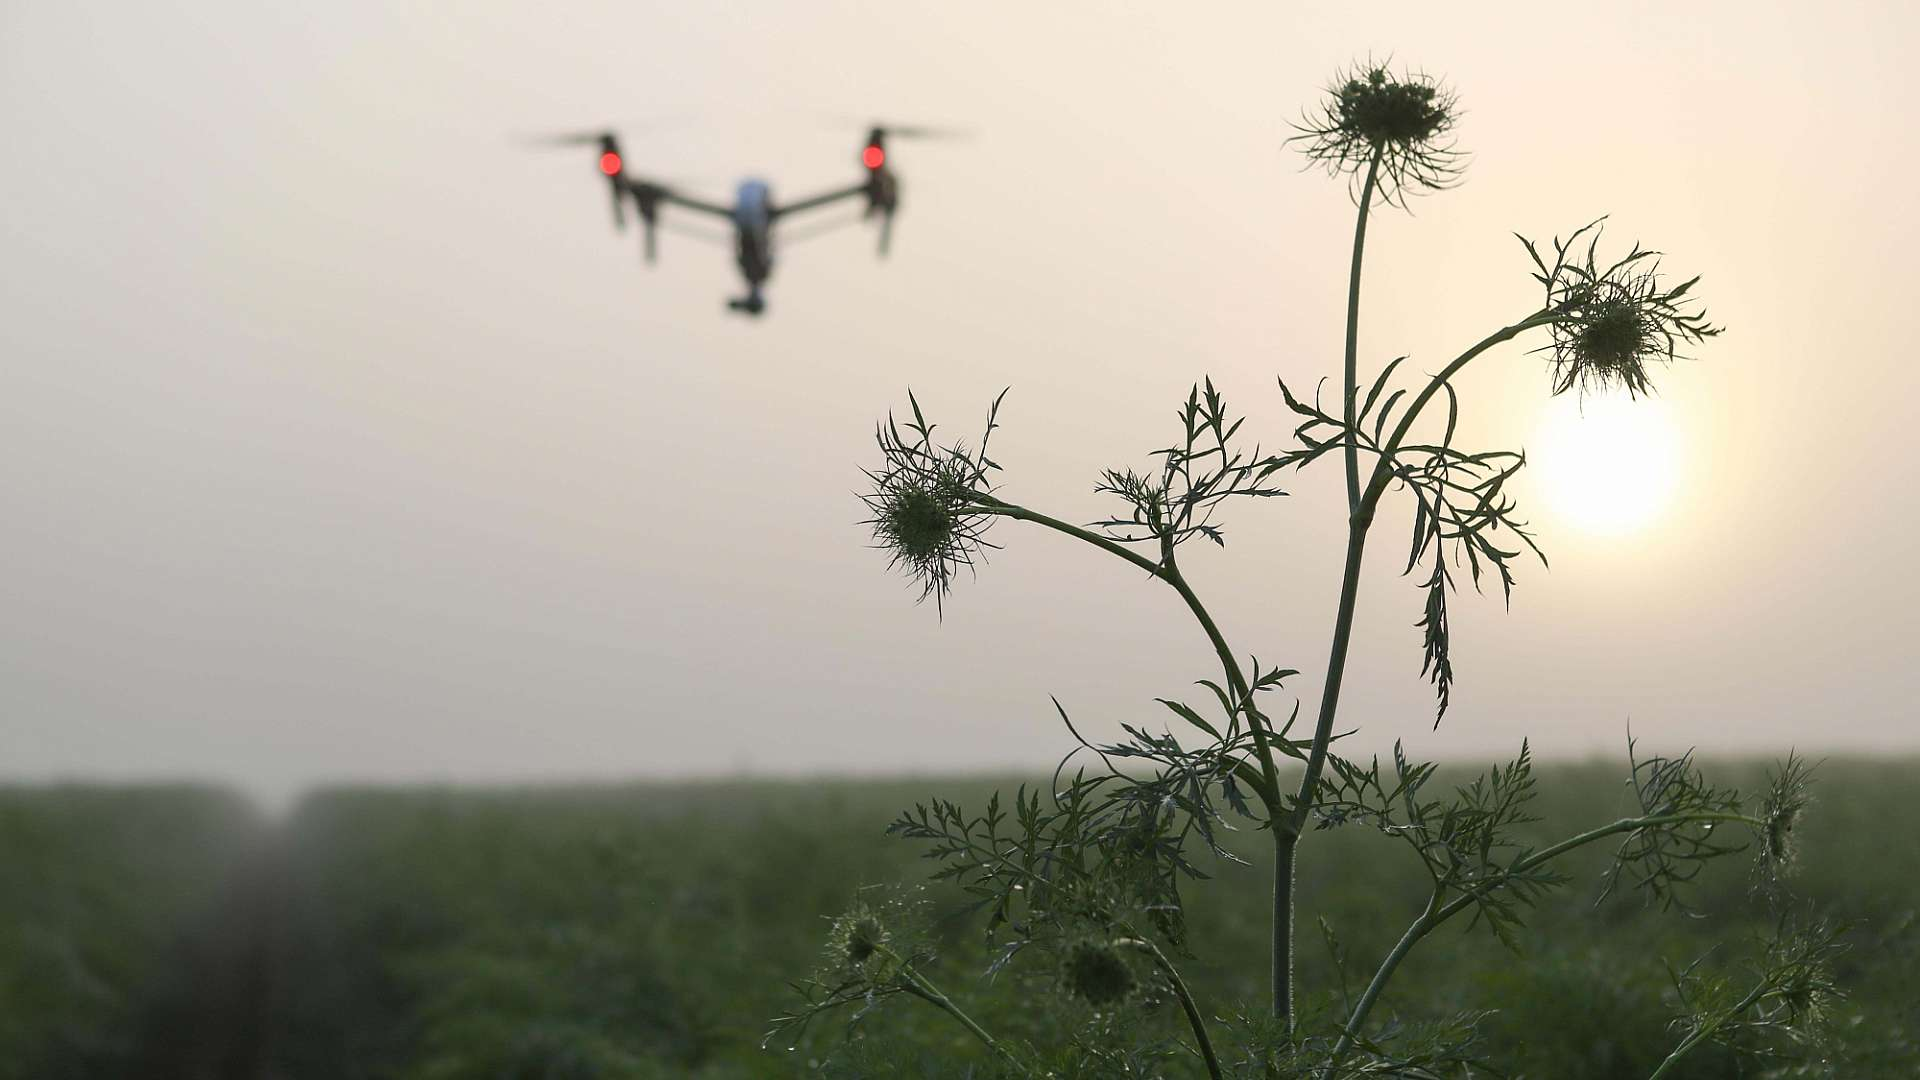 A photo of a drone used in monitoring crops